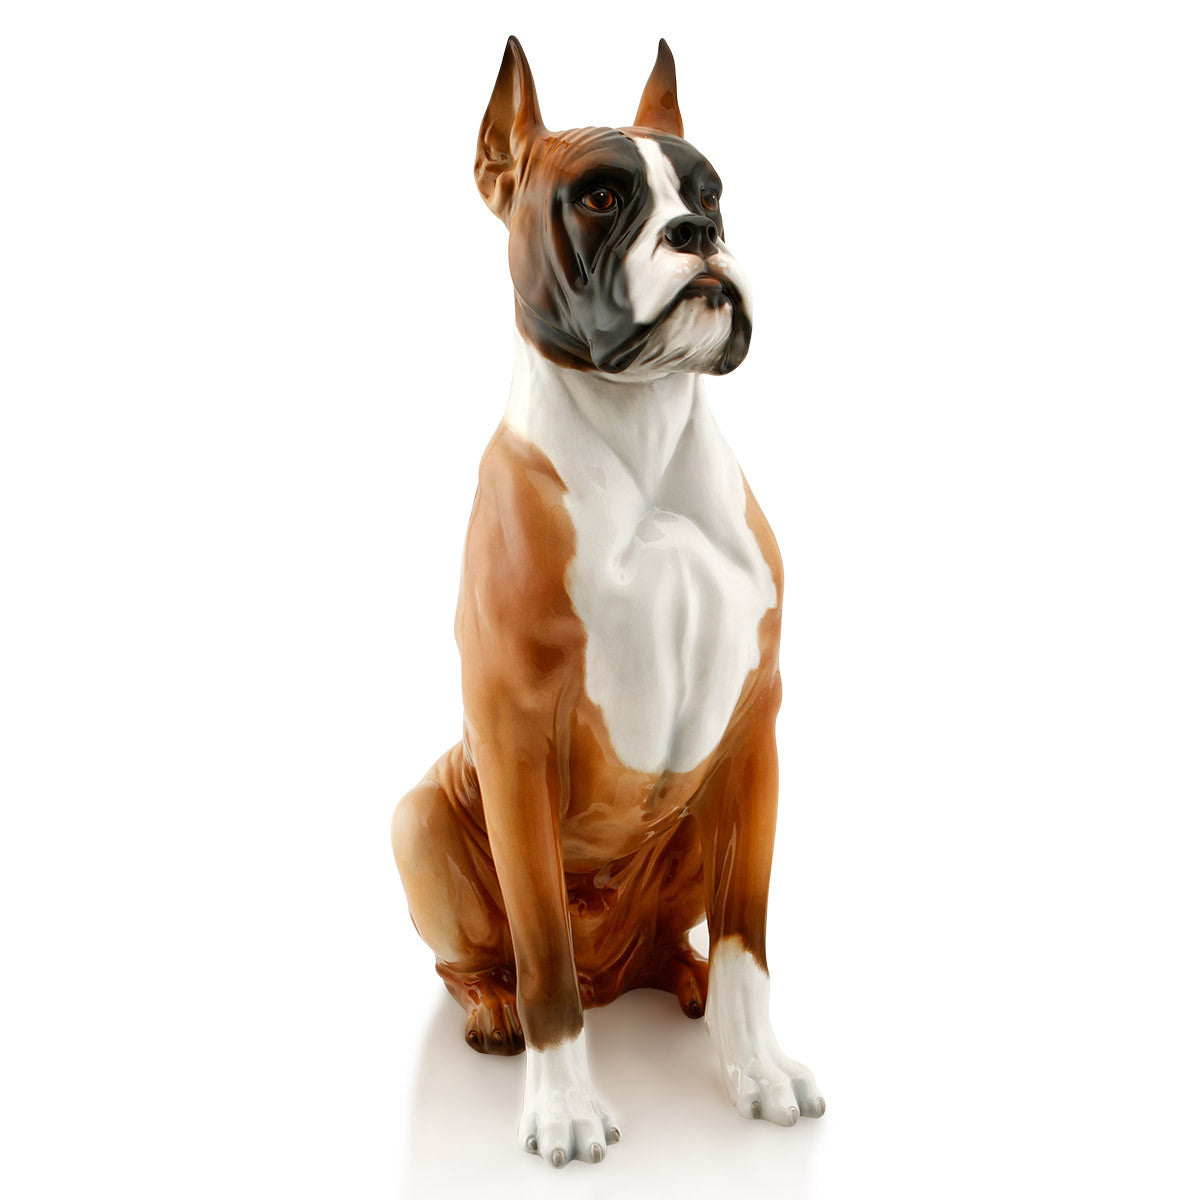 Ceramic big boxer dog statue with lifelike details